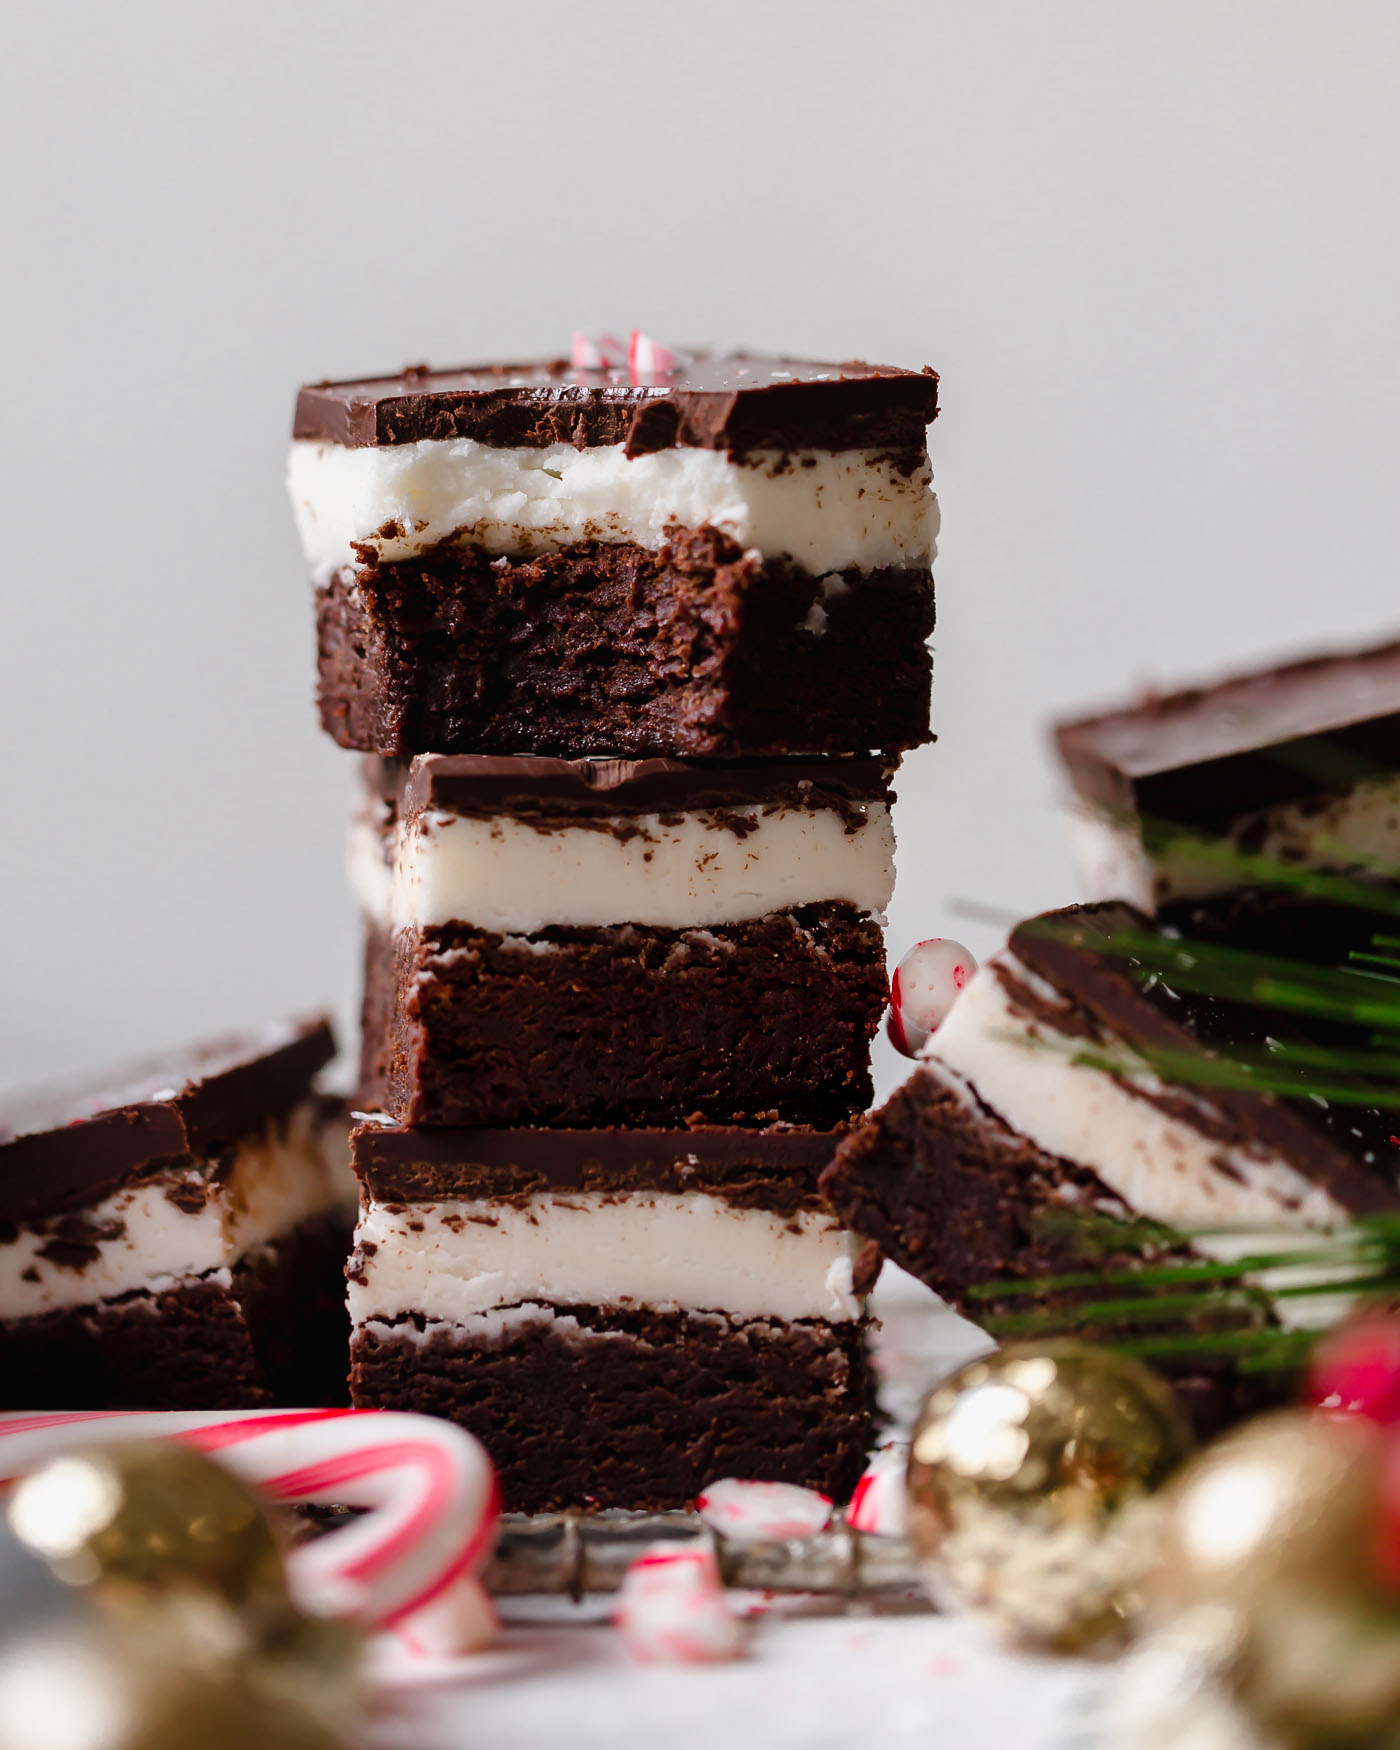 dark chocolate peppermint brownies recipe. extra fudgy dark chocolate brownies topped with homemade peppermint frosting & an easy chocolate glaze. the ultimate easy recipe for a festive holiday dessert! #mintbrowniesrecipe #classicmintbrownies #mintbrowniesfromscratch #mintfrosting #bestmintbrownies #christmascookies #christmasdesserts #darkchocolate #browniesfromscratch #brownieseasy #holidaybaking